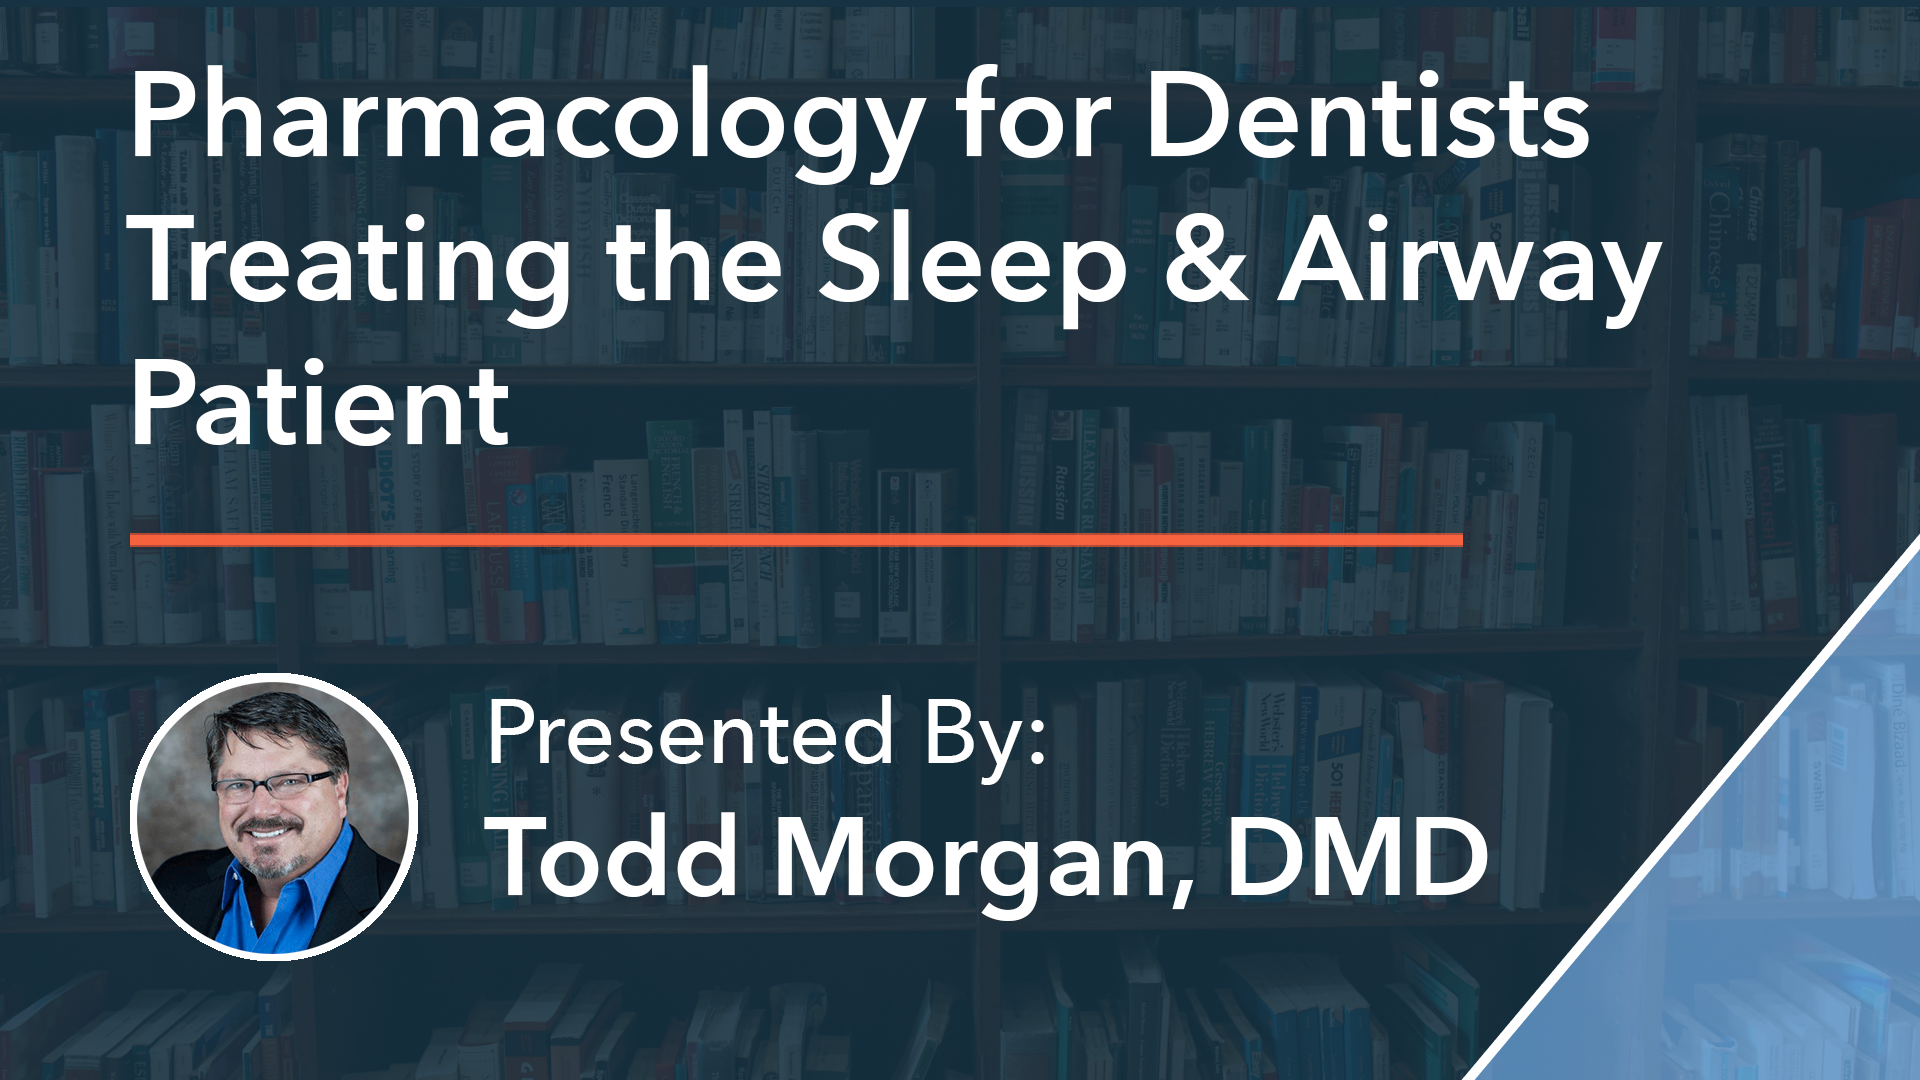 Pharmacology for Dentists Treating the Sleep & Airway Patient Dr Todd Morgan